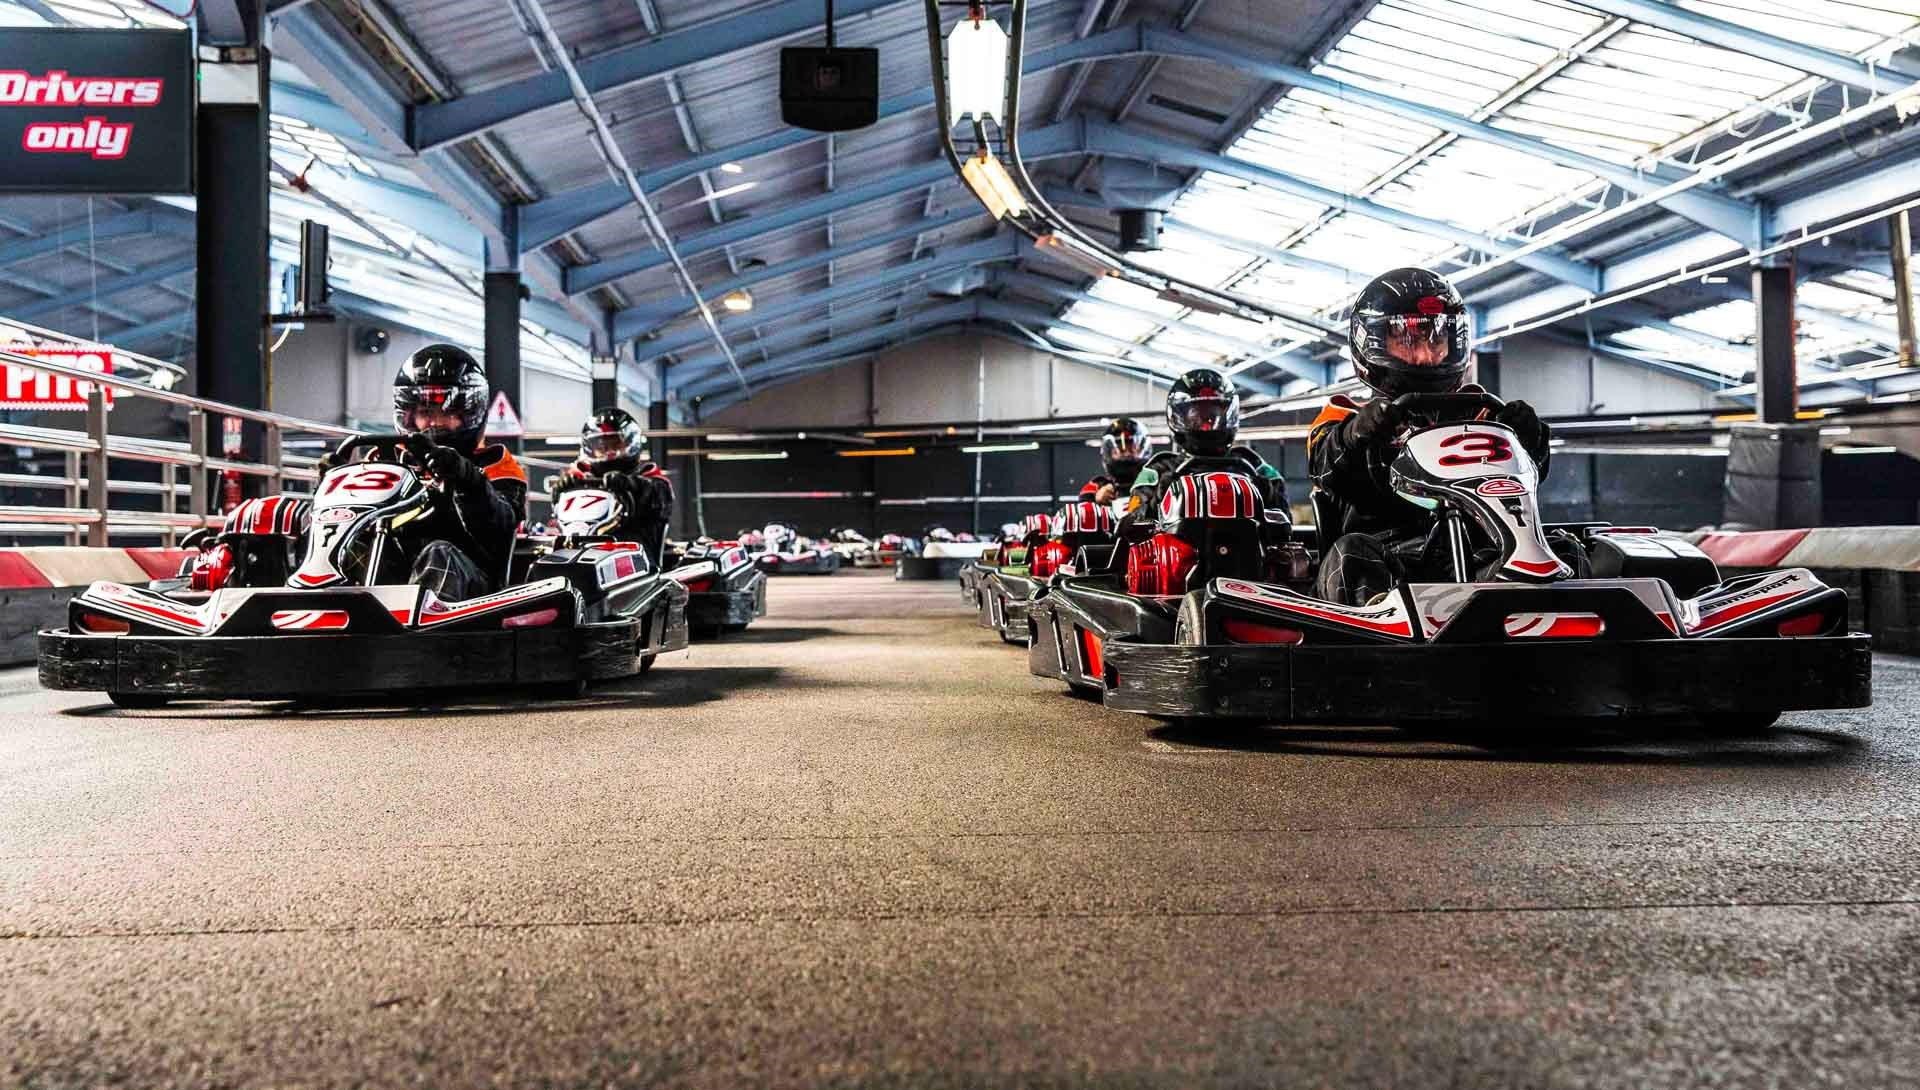 Web_Header_1920x1090_Go_Karting_Race.jpg